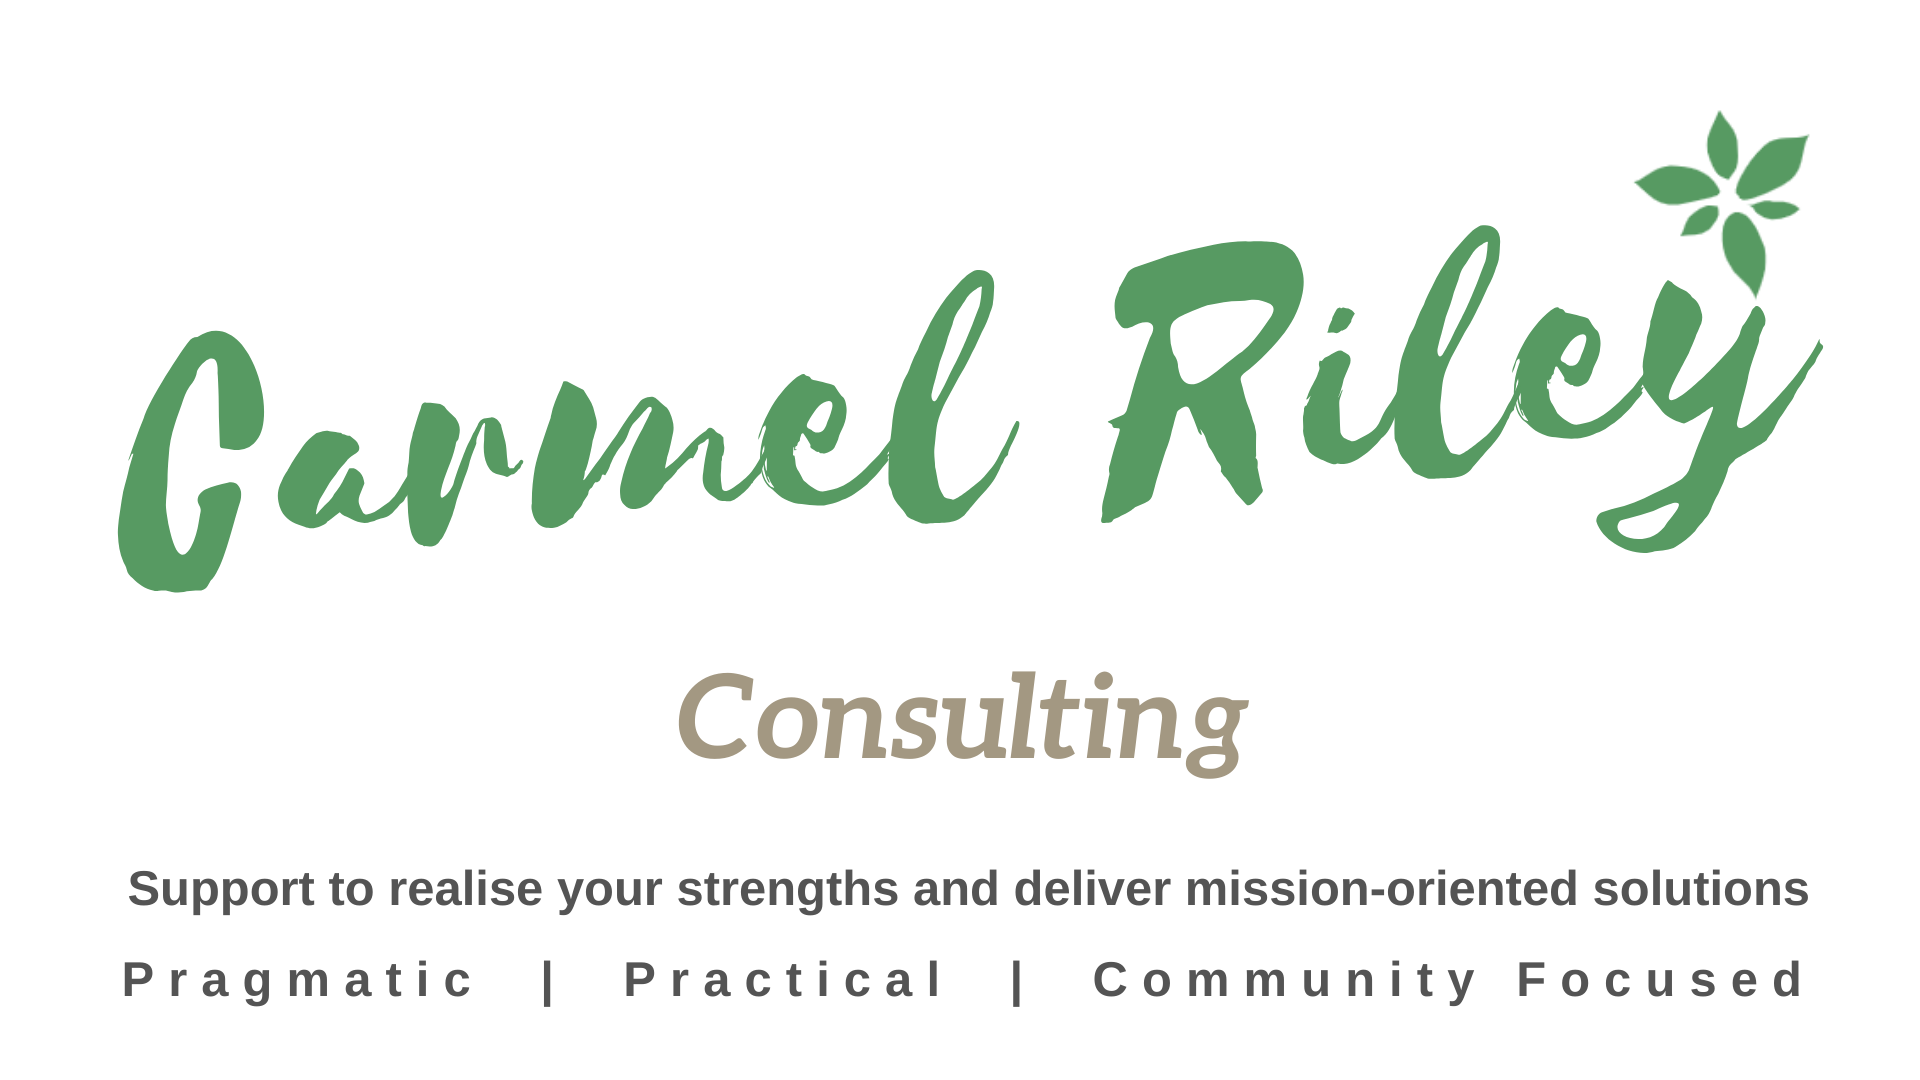 Carmel Riley Consulting Logo using coworking space